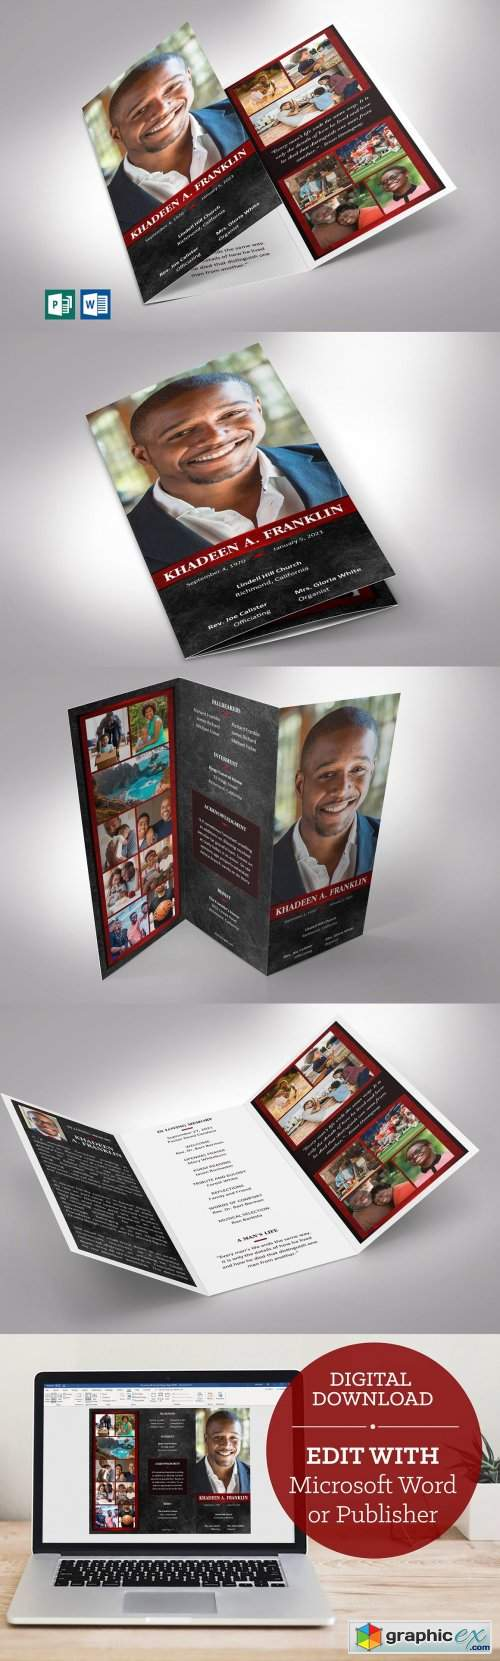 Red Rock Trifold Funeral Program